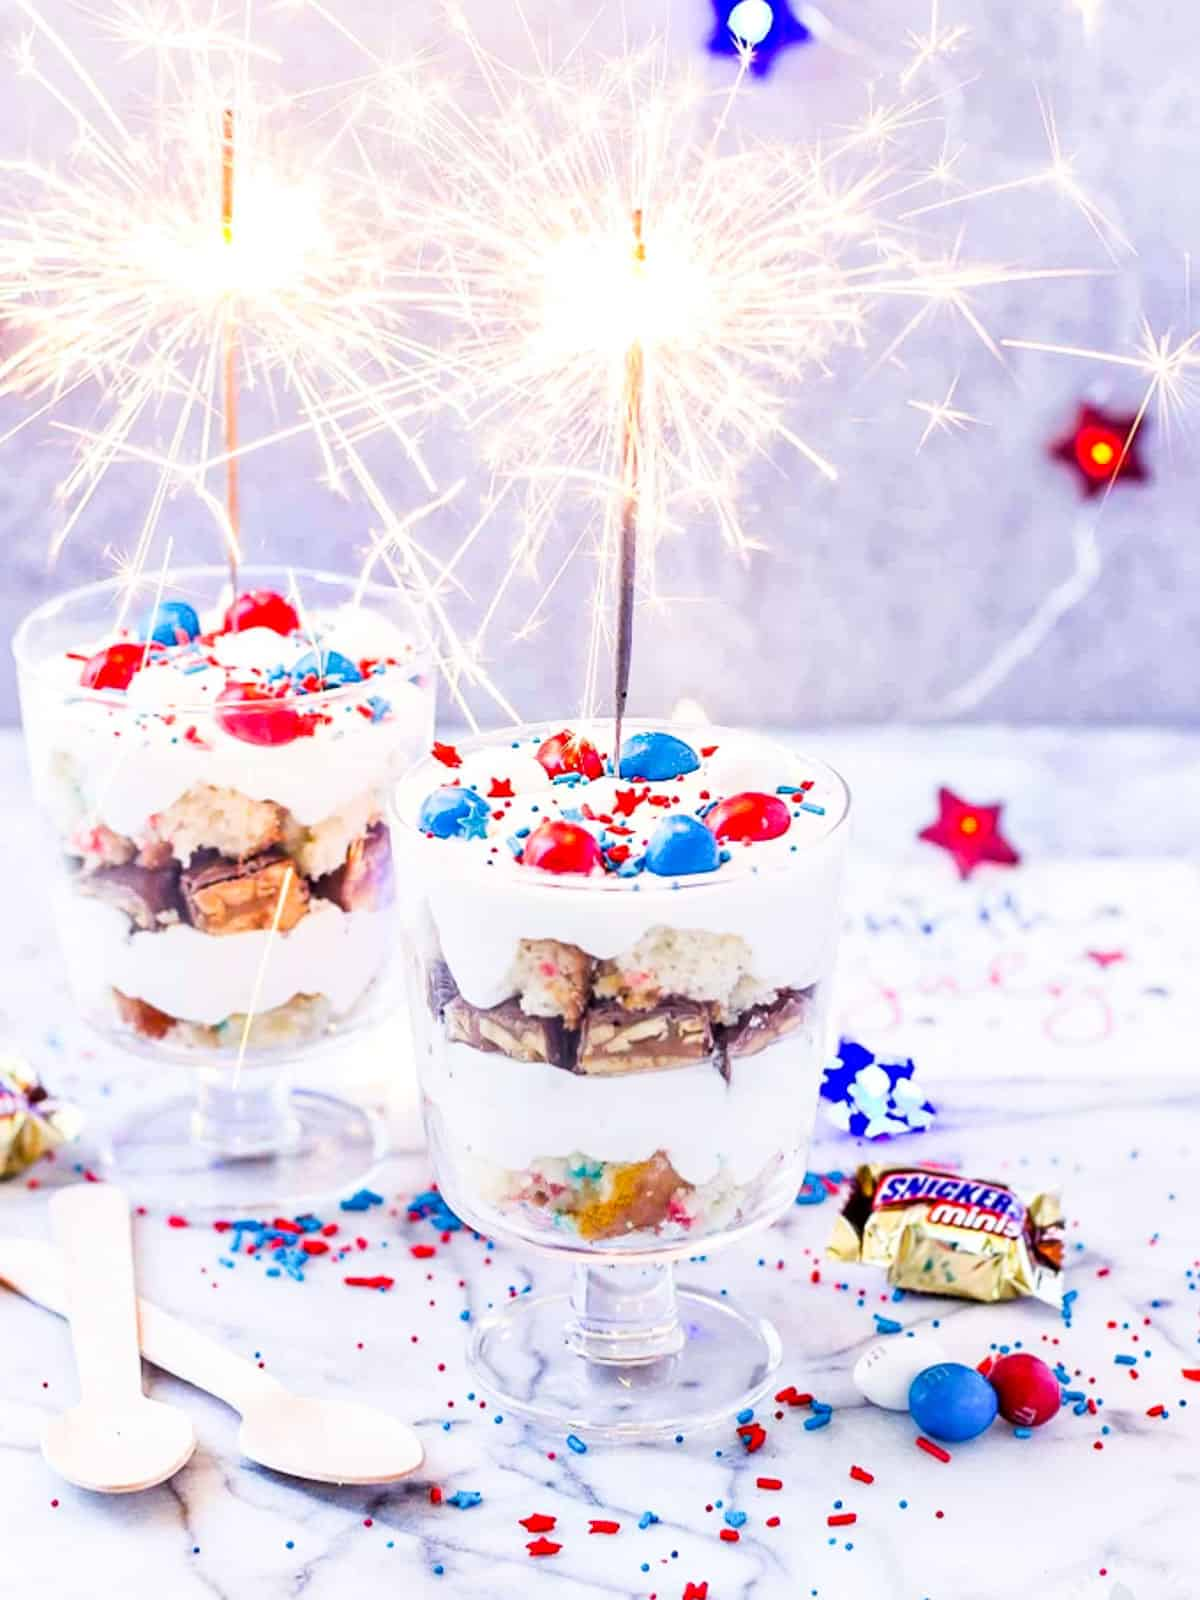 Small glass trifles filled with candy, whip cream, and July 4th sprinkles.